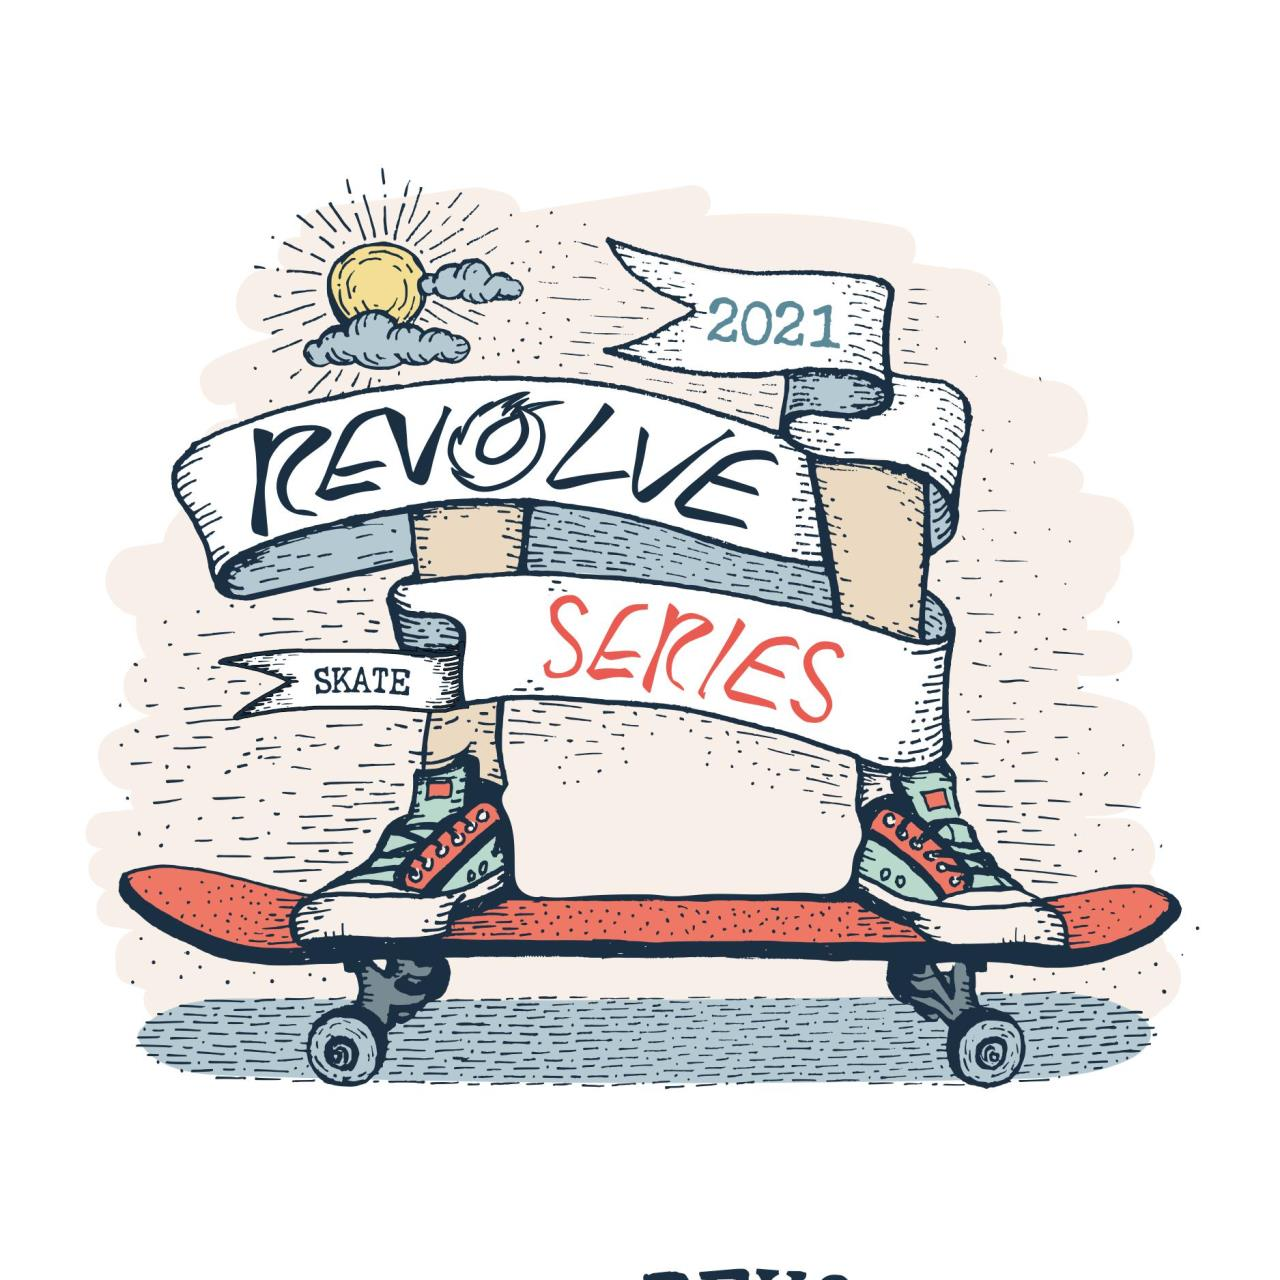 Revolve Skate Series set to roll into town